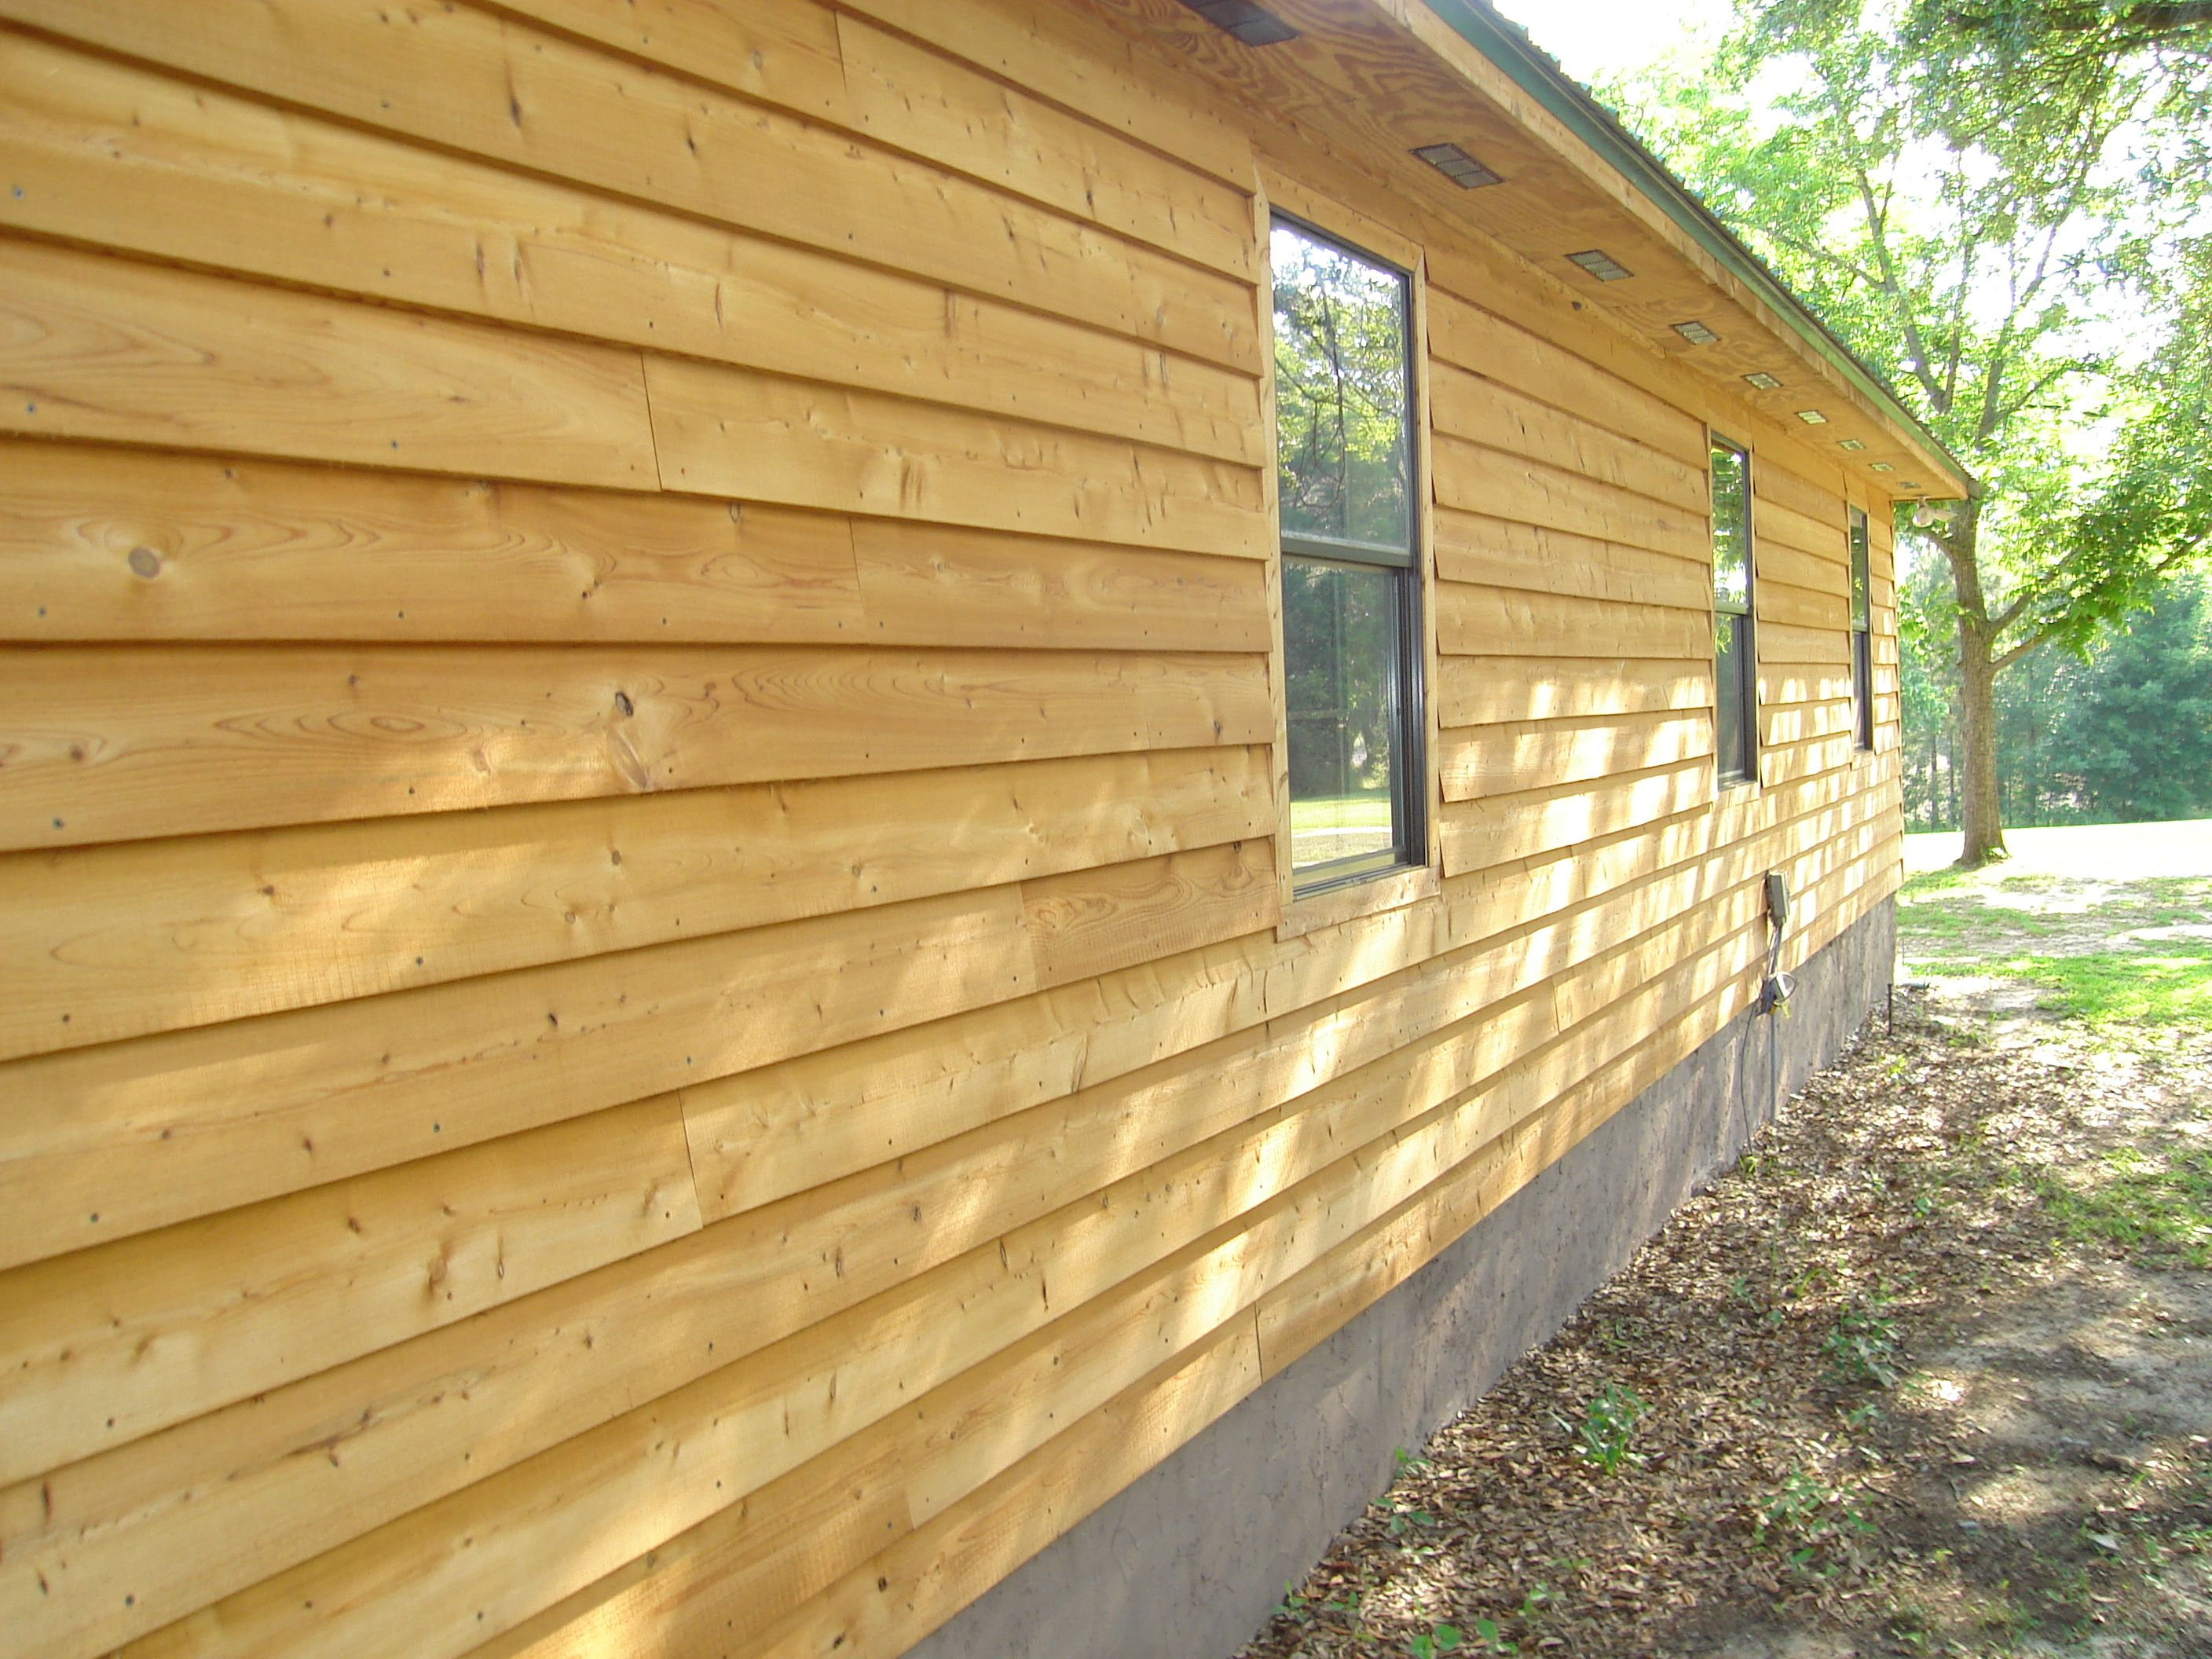 Shiplap Walls Shiplap Siding Tongue And Groove Wood Siding New House Ideas Pinterest